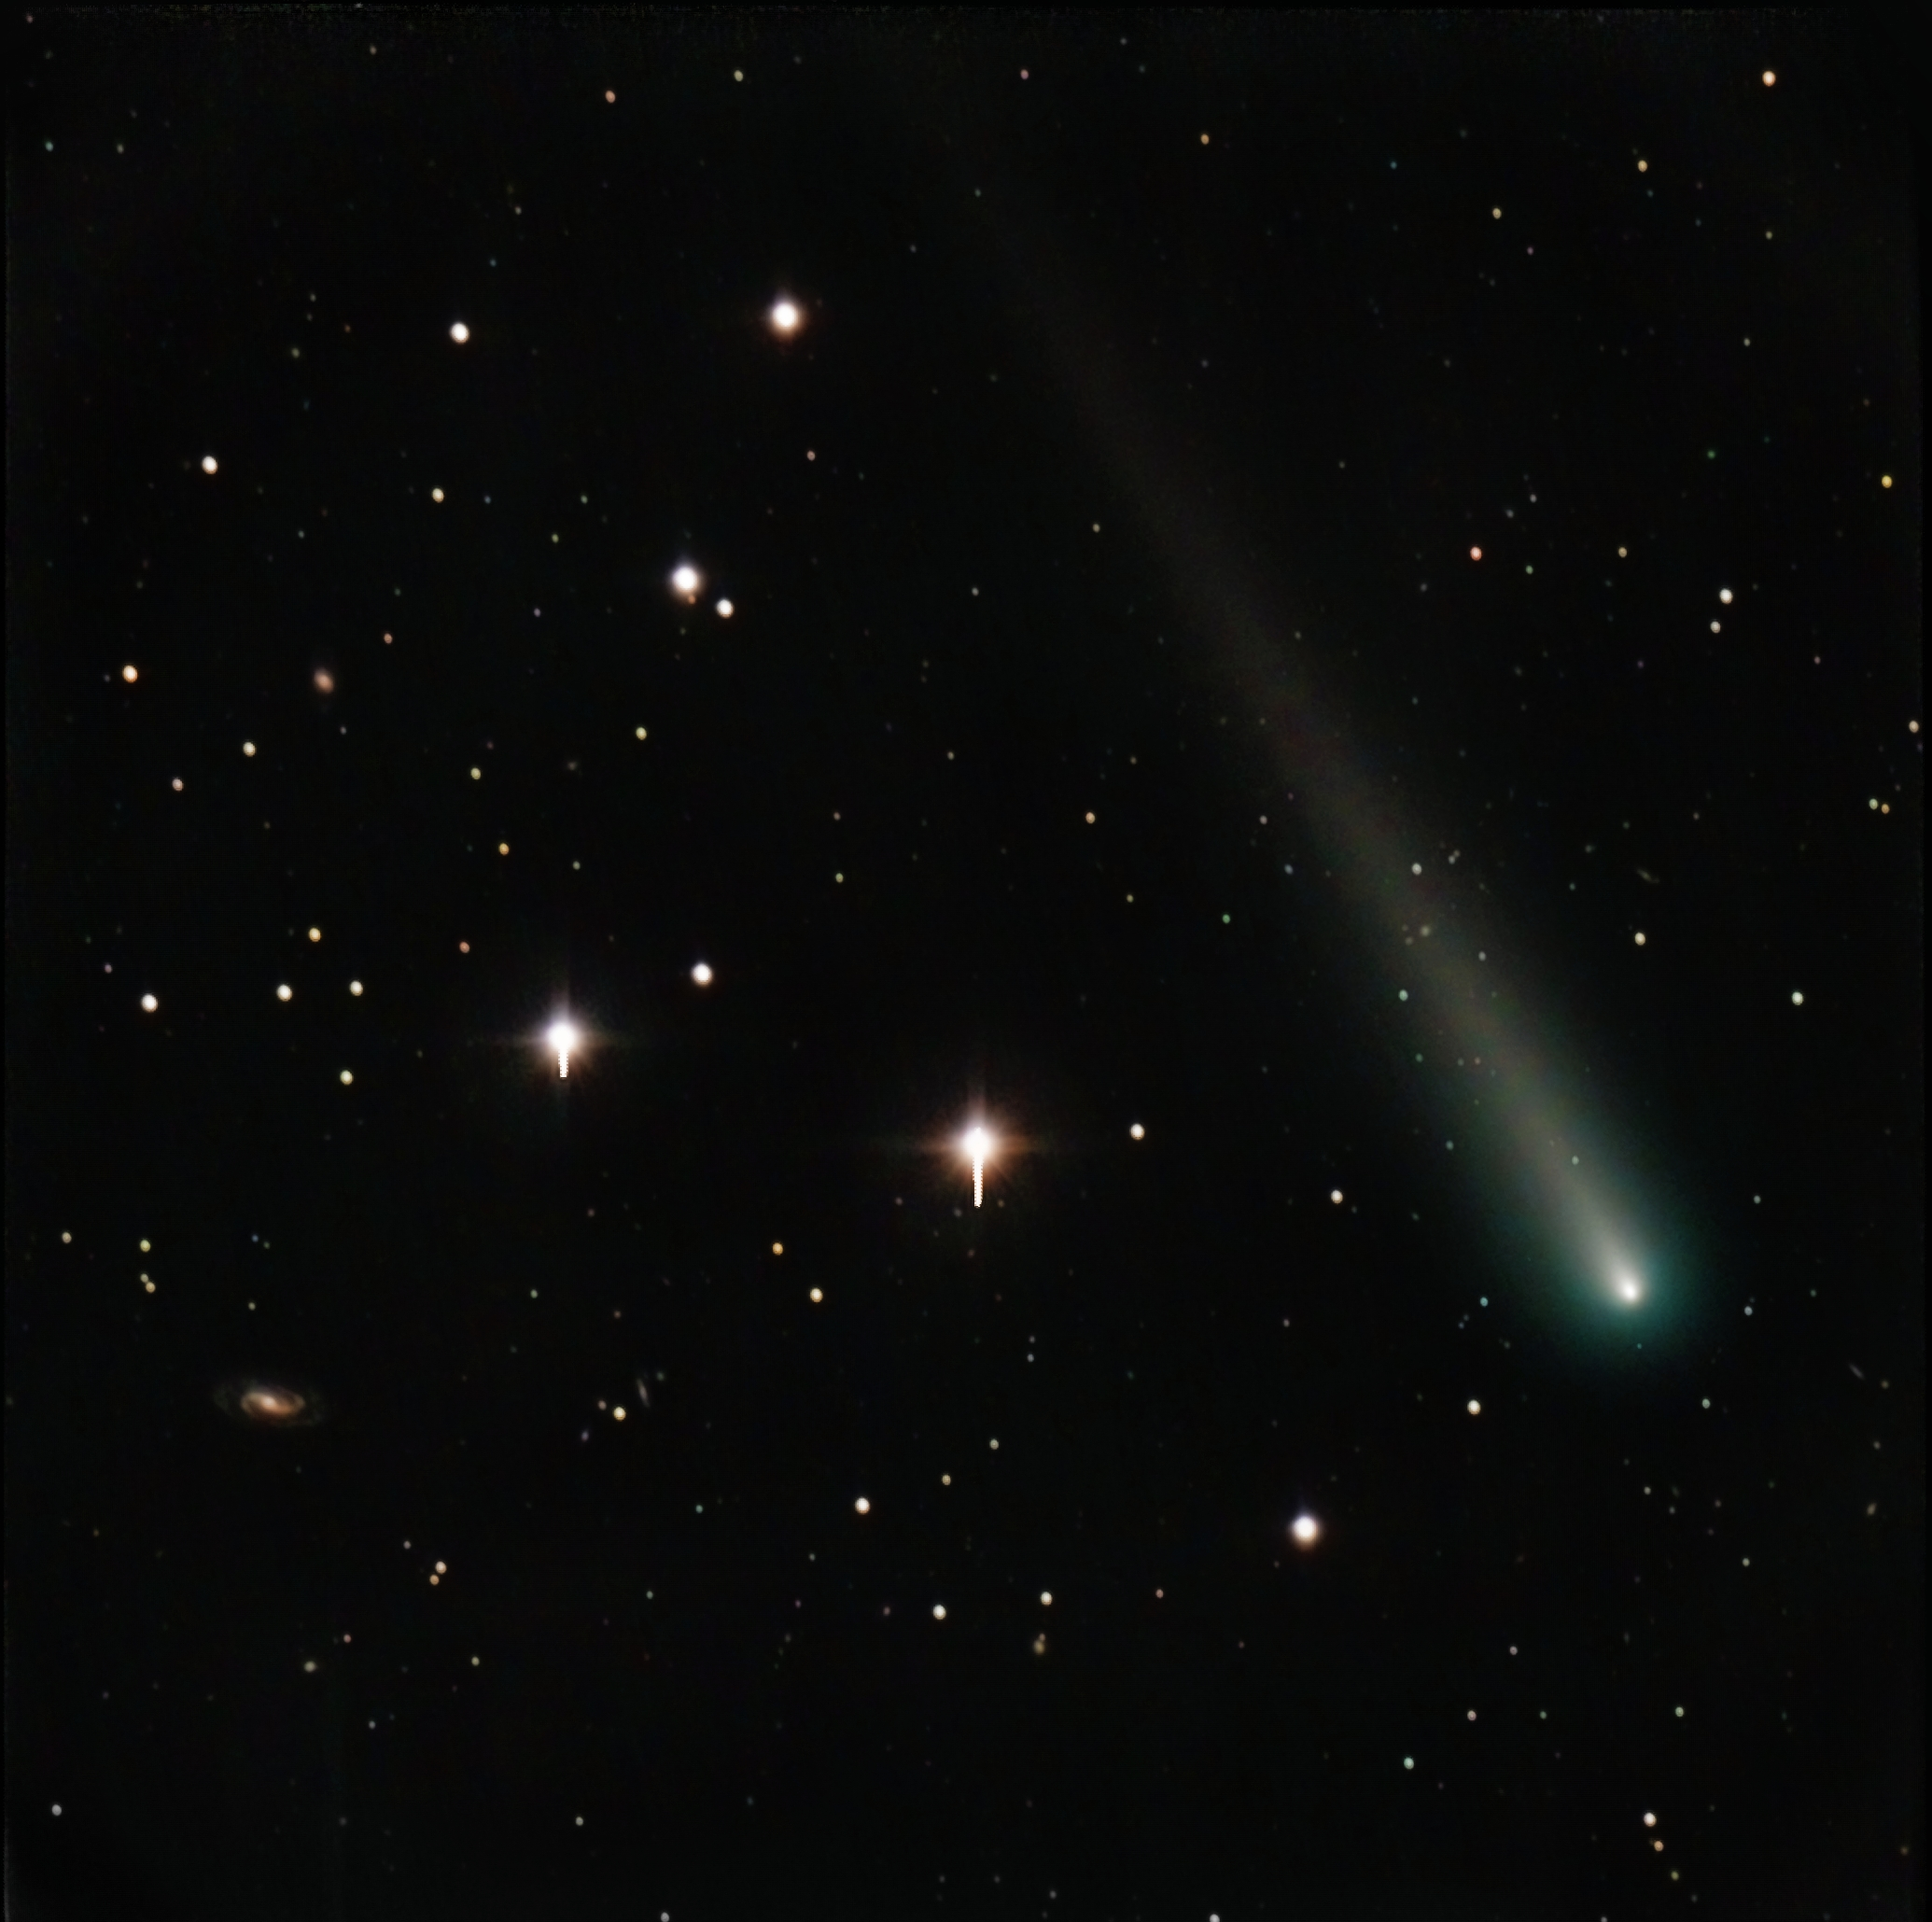 Comet ISON by Scott Ferguson